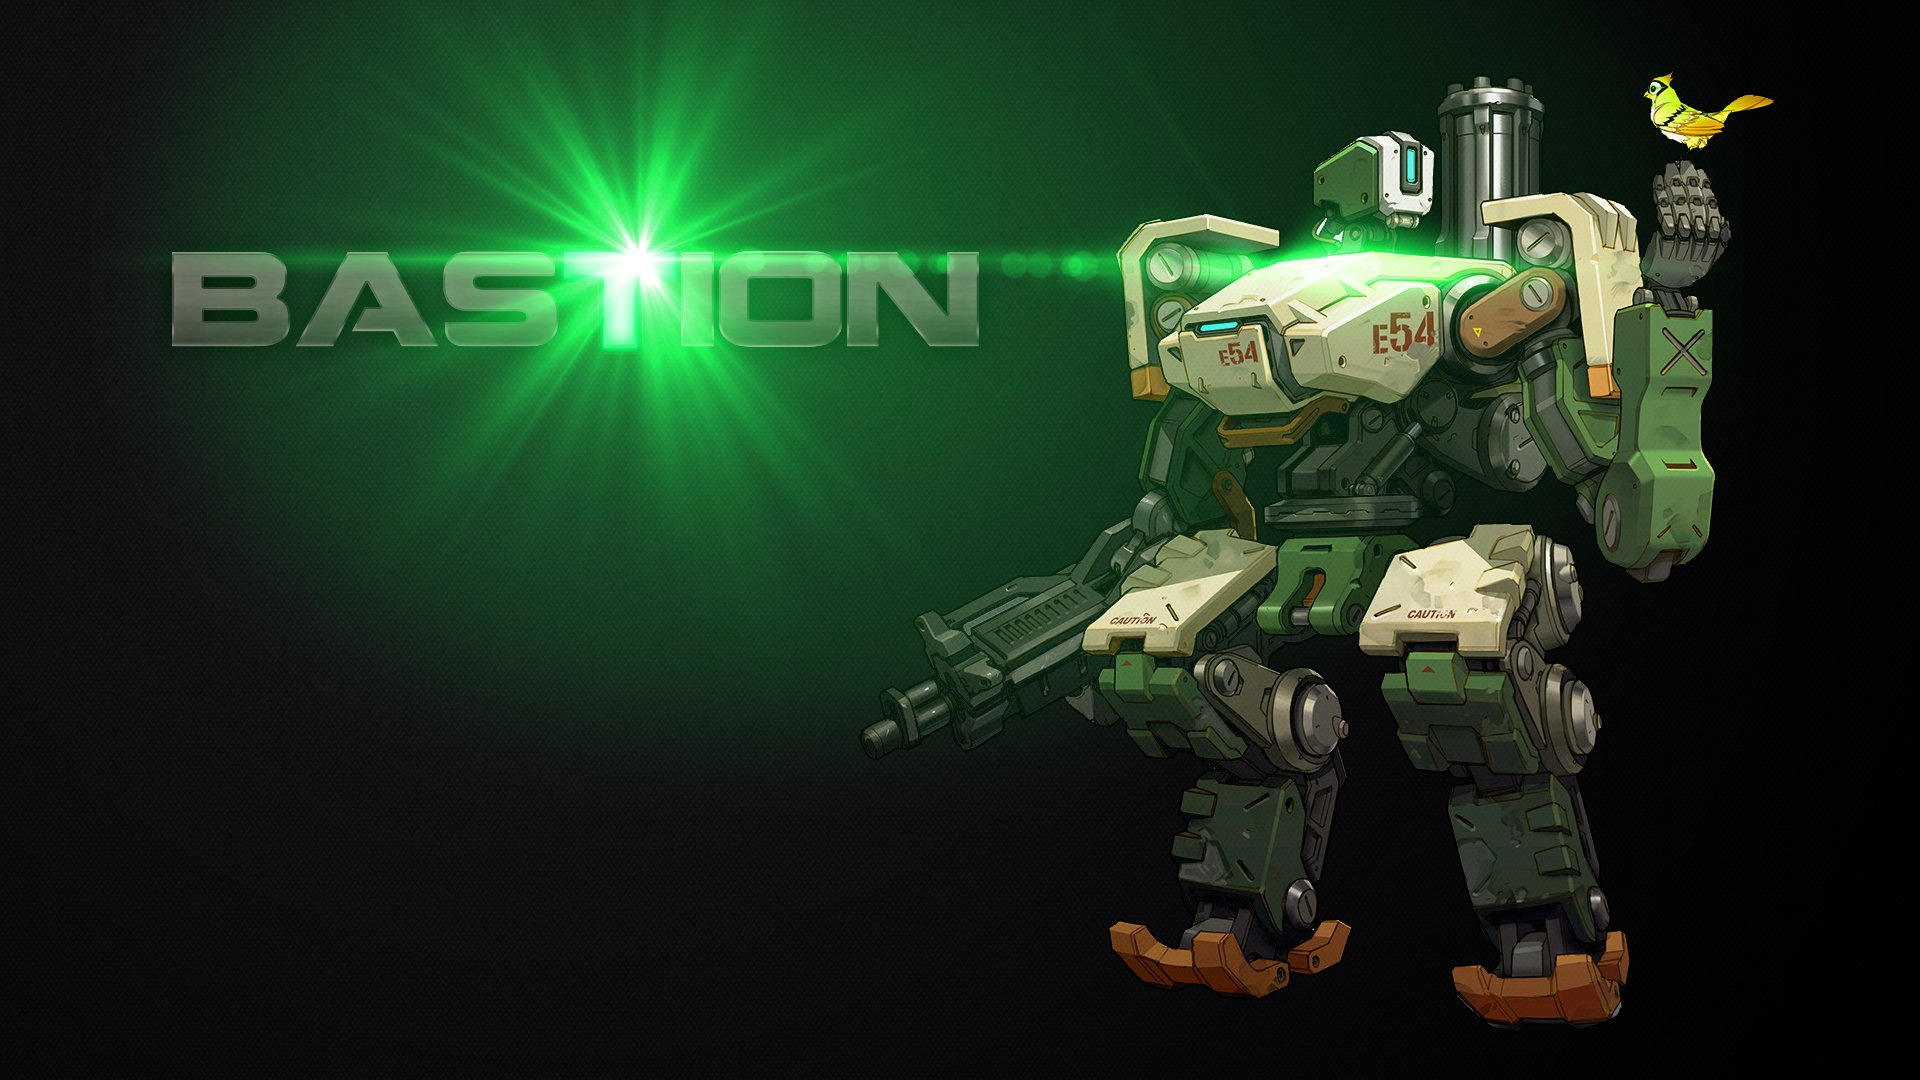 Overwatch hd wallpaper background image 1920x1080 id 704017 wallpaper abyss - Bastion wallpaper ...